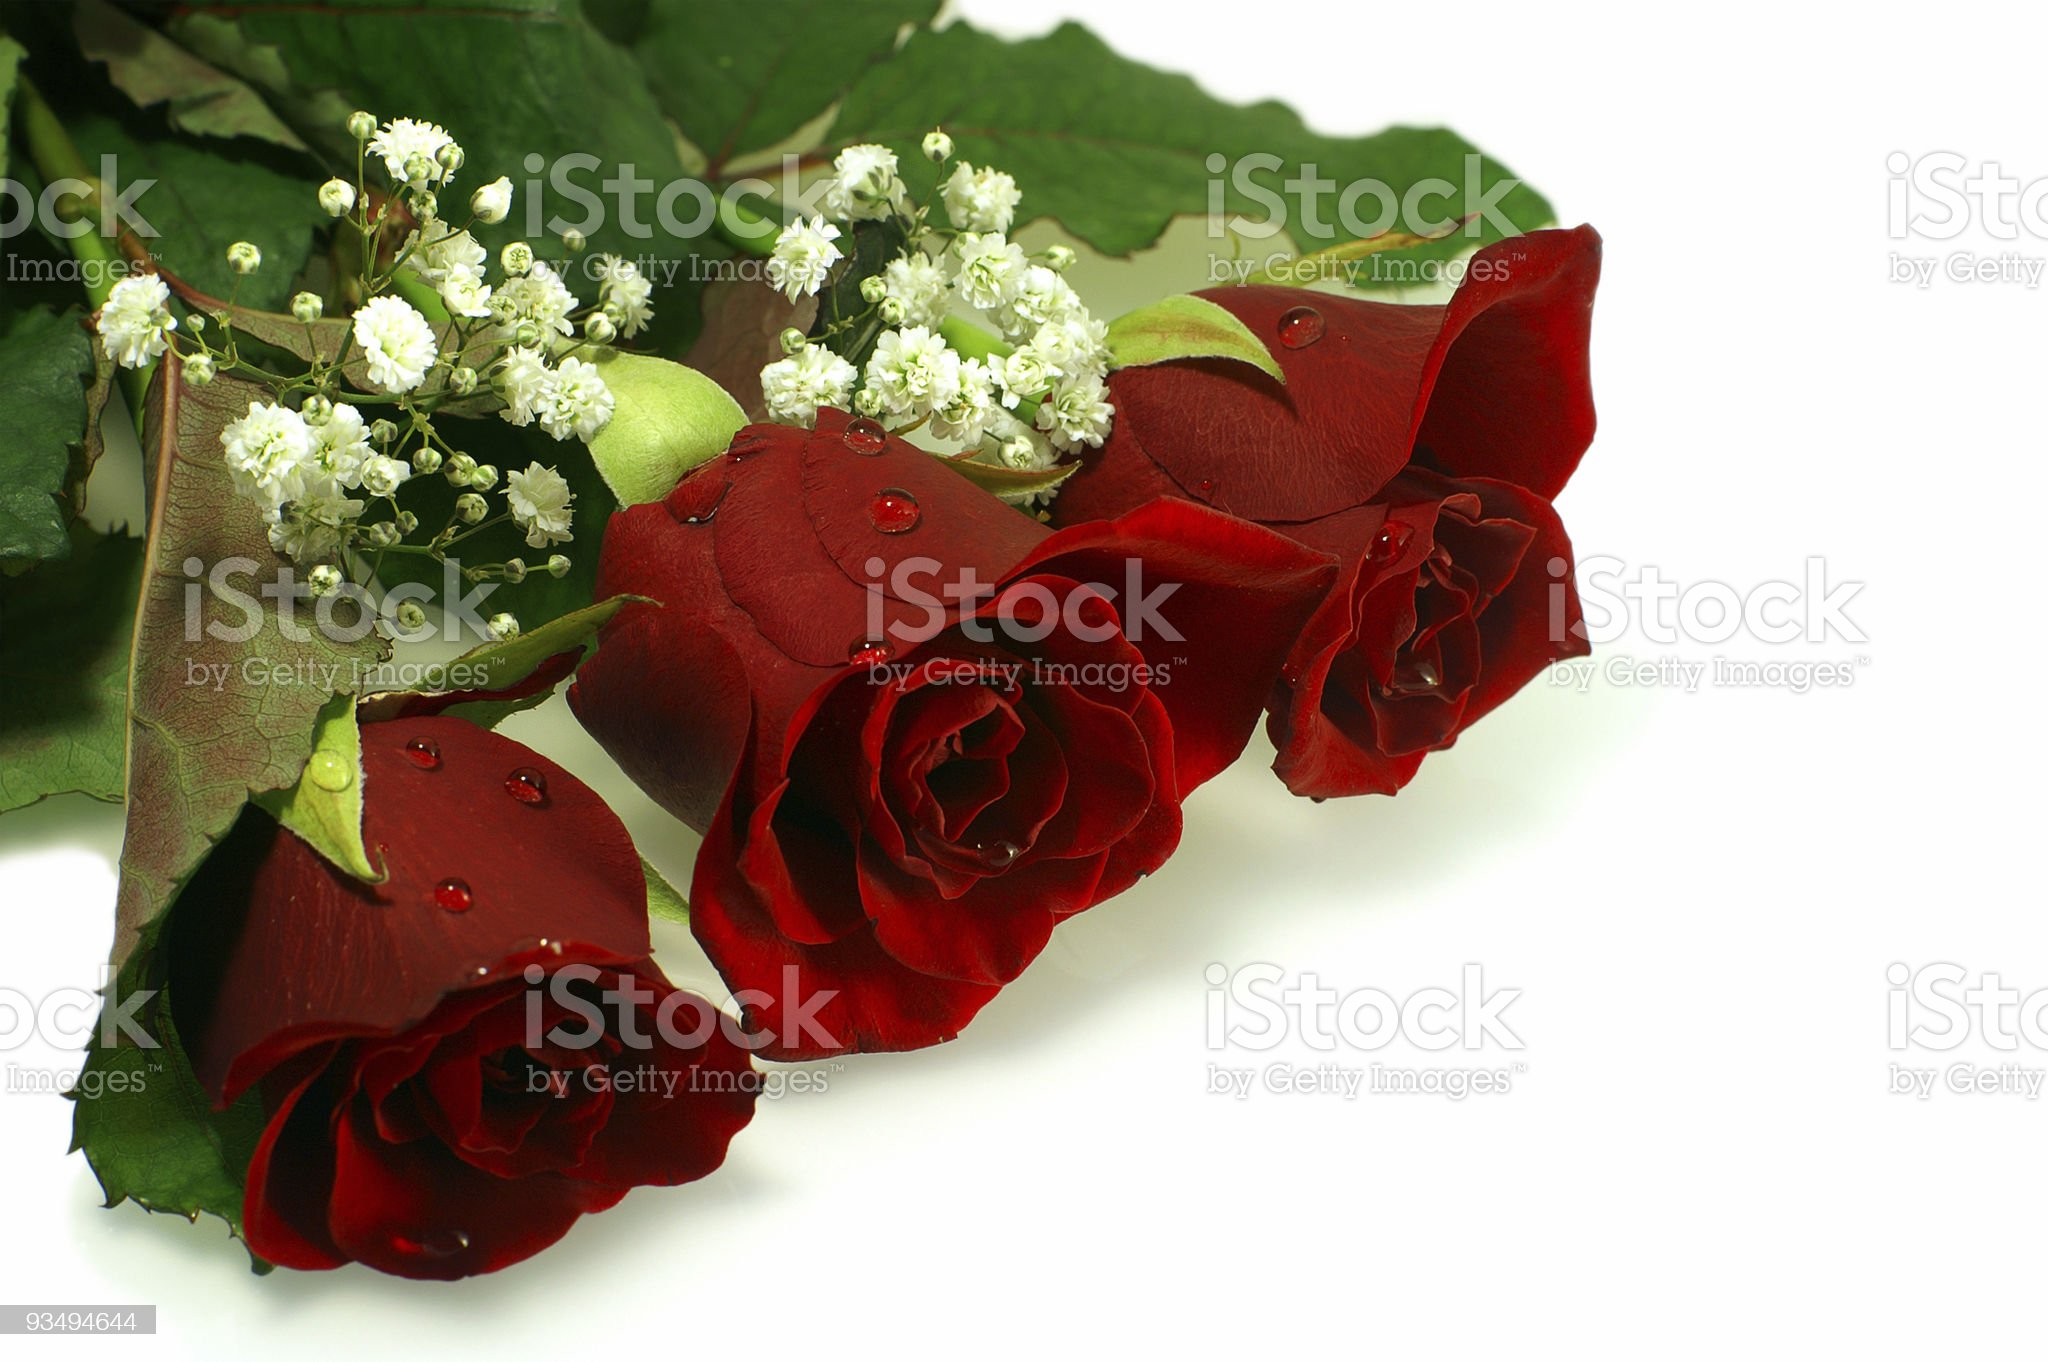 floral composition with three nice red roses royalty-free stock photo